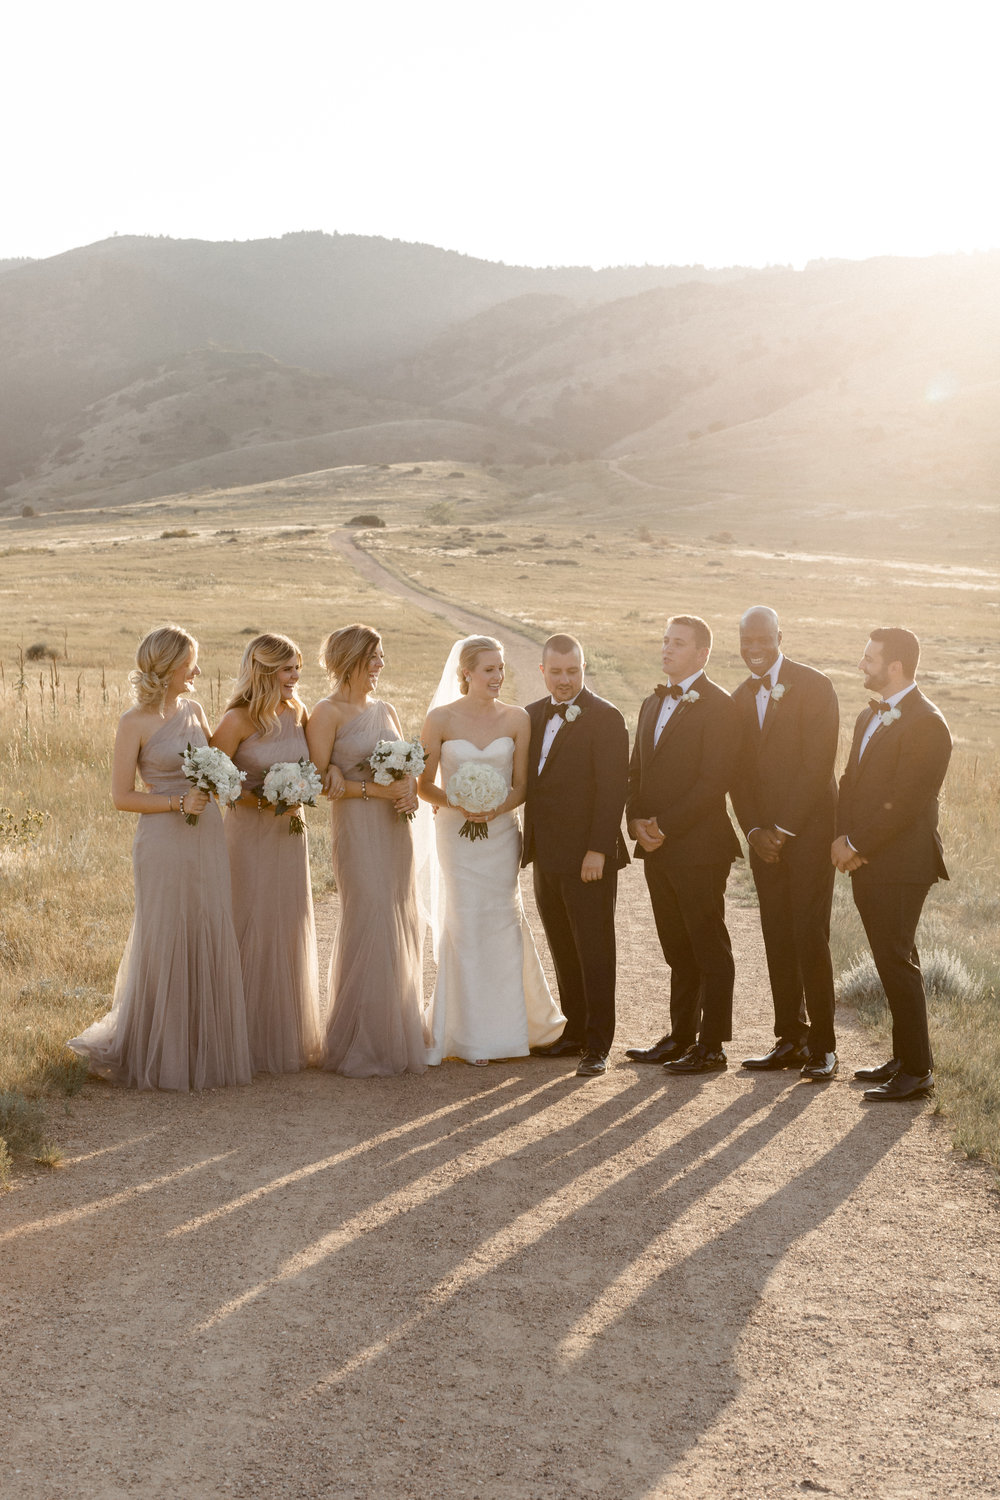 Hailley+Howard_Colorado+Wedding_The+Manor+House-394.jpg